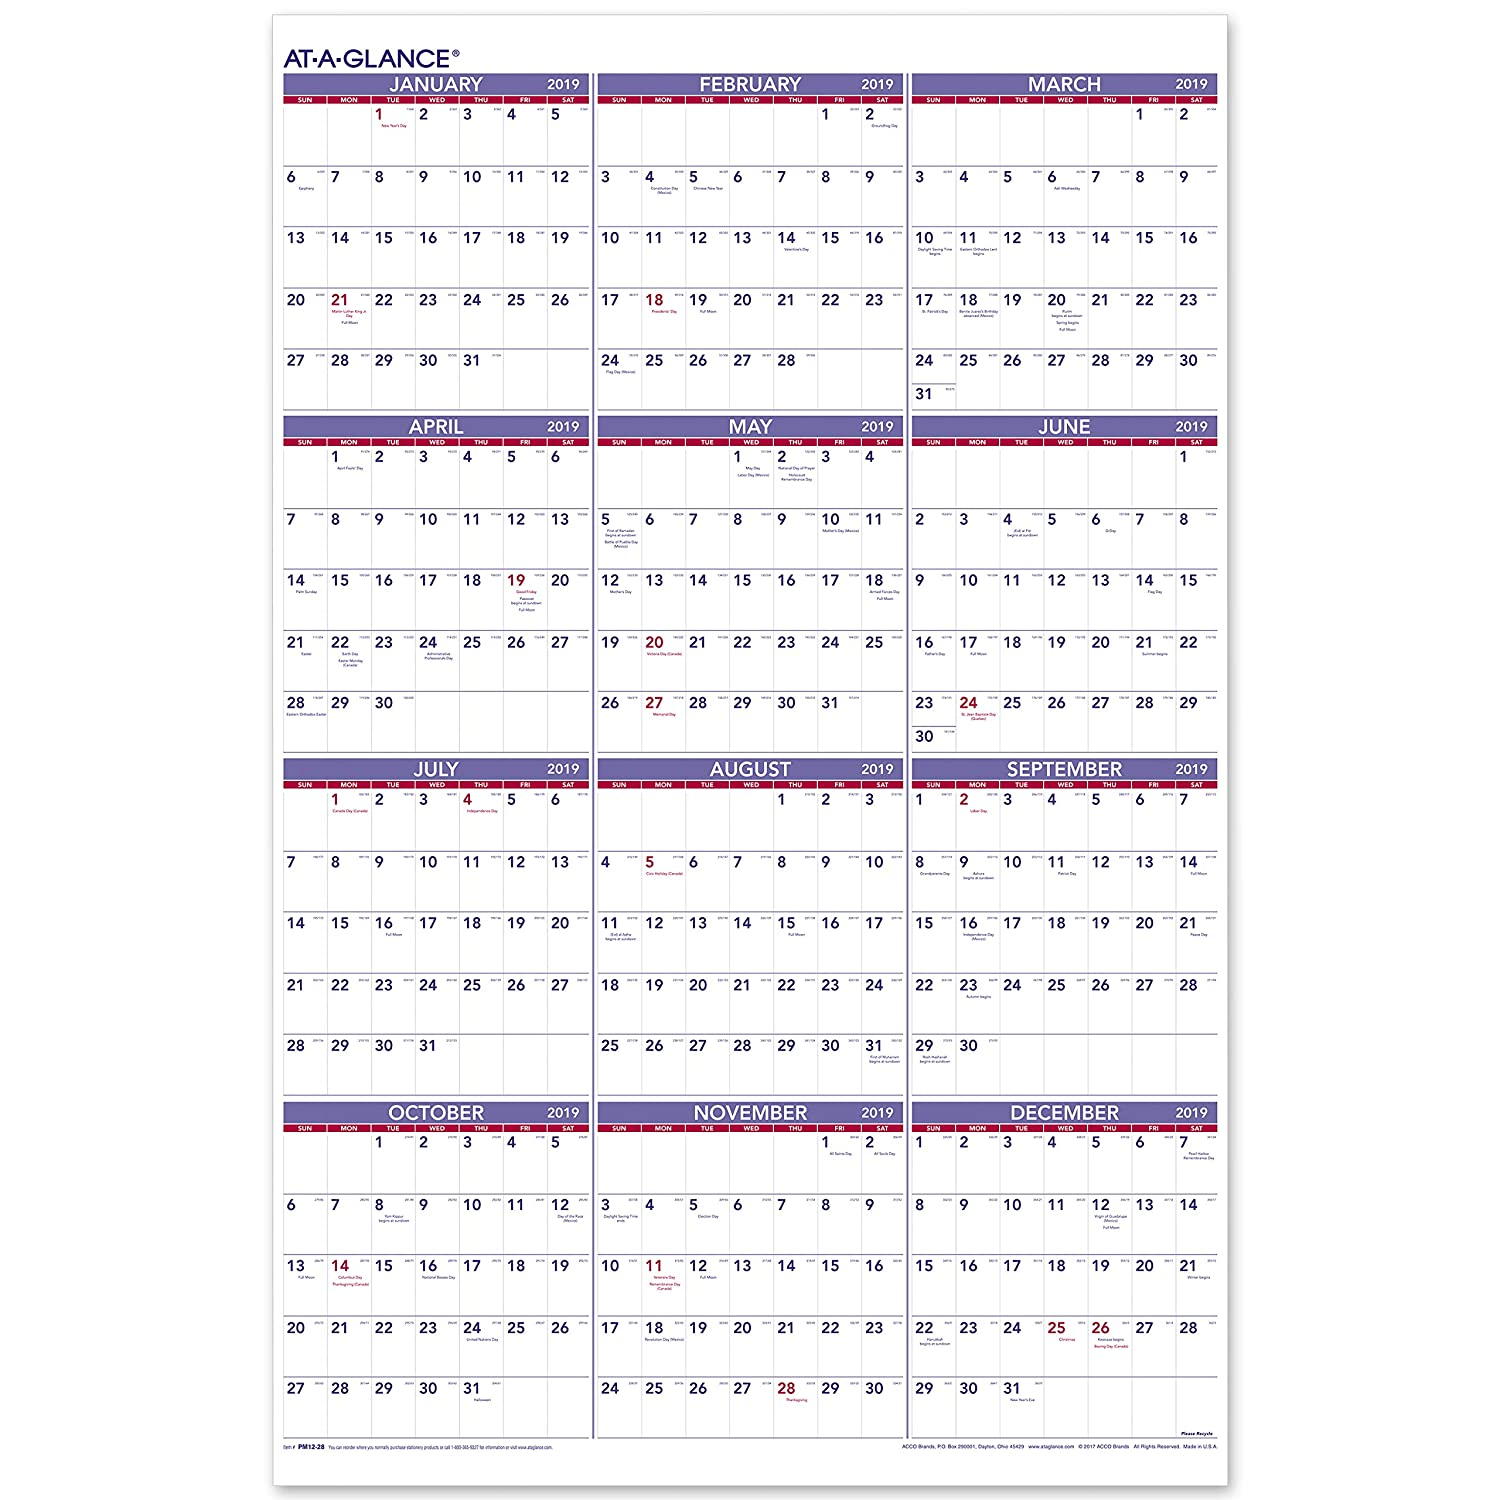 At A Glance Calendar.At A Glance 2019 Yearly Wall Calendar 36 X 24 Xlarge Vertical Pm1228